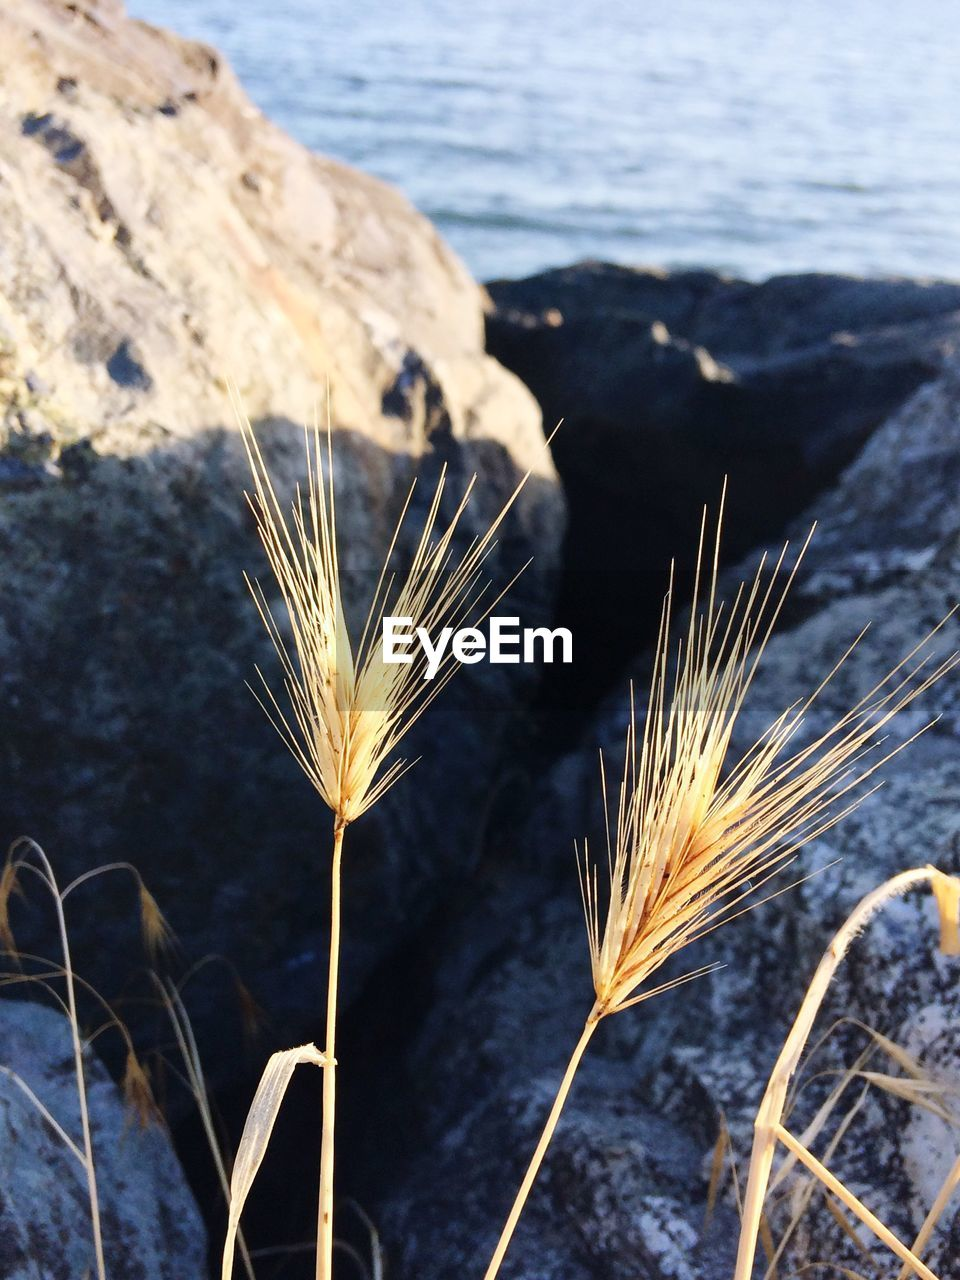 nature, tranquil scene, growth, cereal plant, plant, beauty in nature, wheat, no people, tranquility, close-up, outdoors, focus on foreground, scenics, agriculture, ear of wheat, day, rural scene, freshness, sky